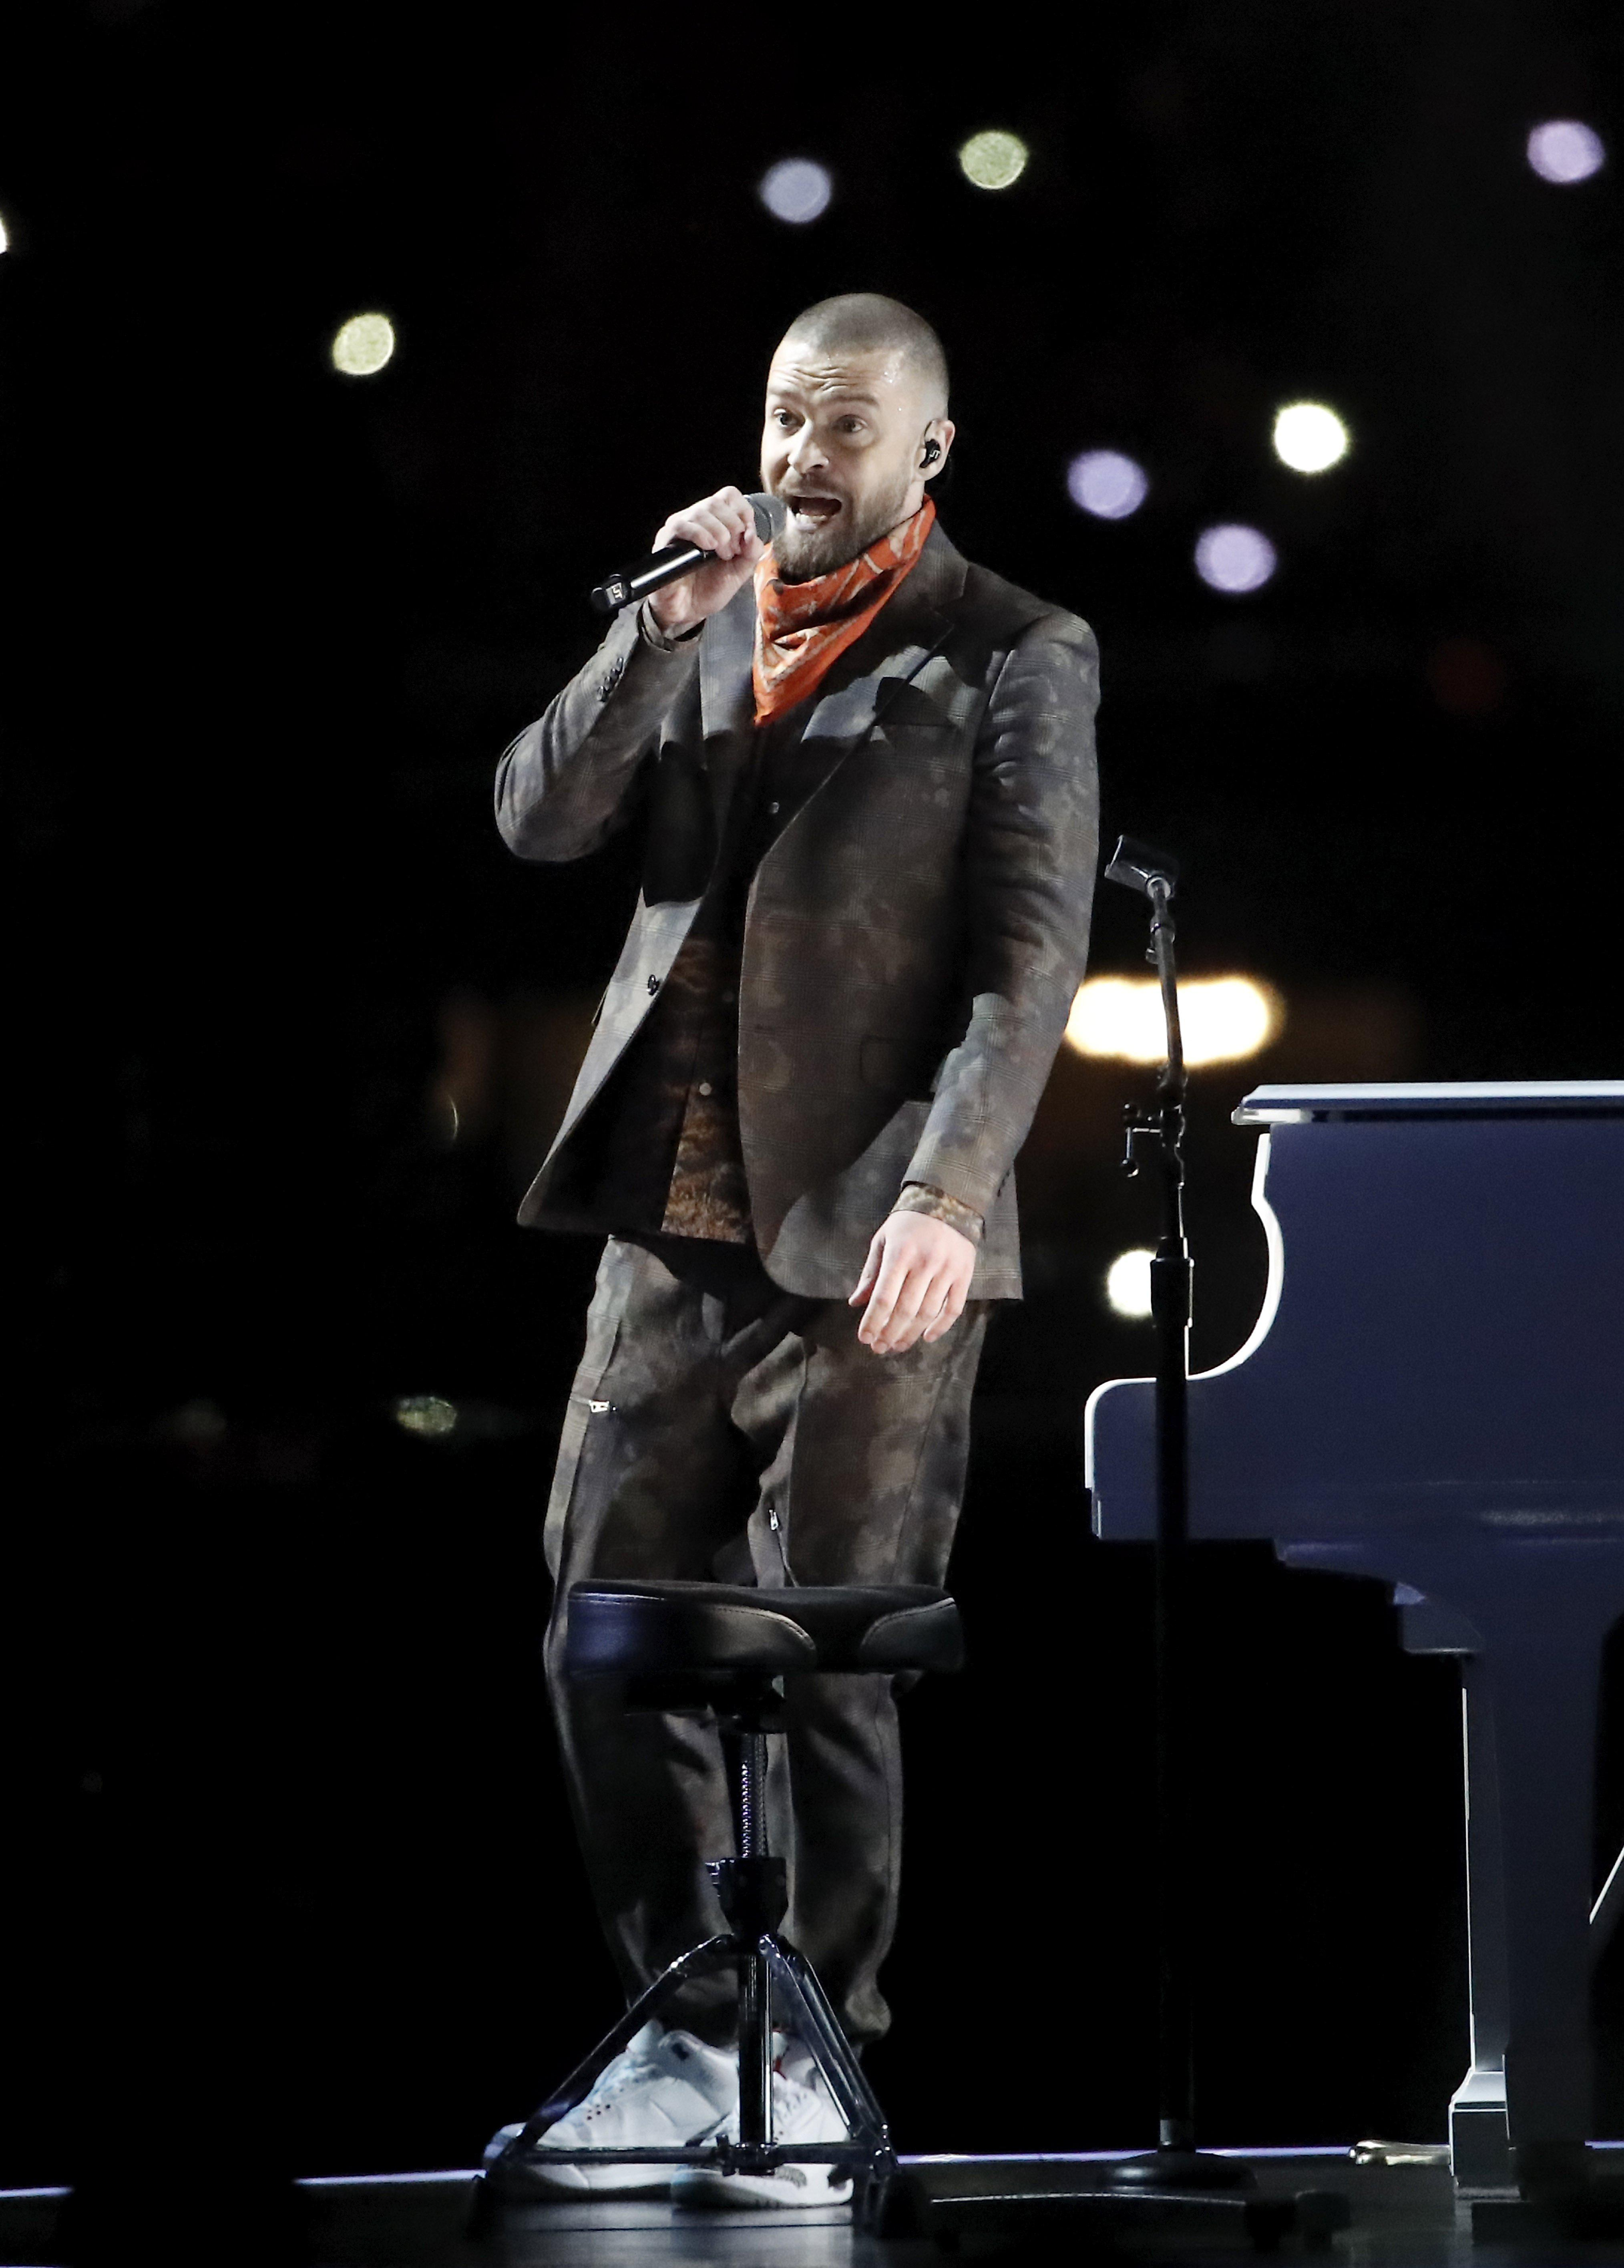 Justin Timberlake made the most of his moment in the spotlight at the Super Bowl